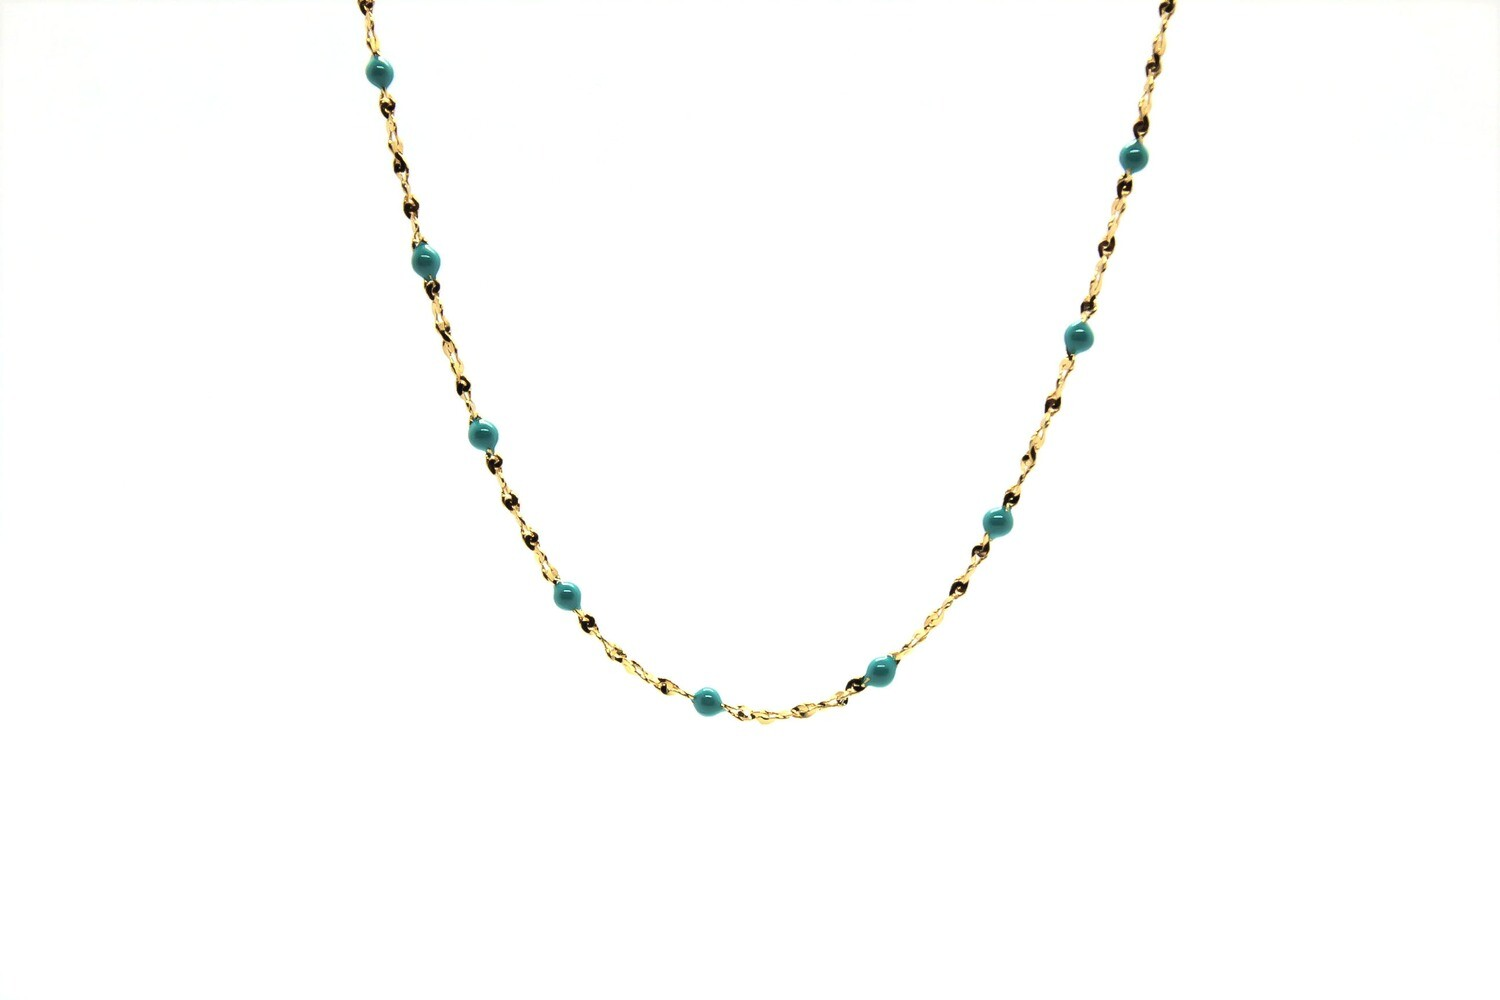 Collier Gigy - Perles Turquoise